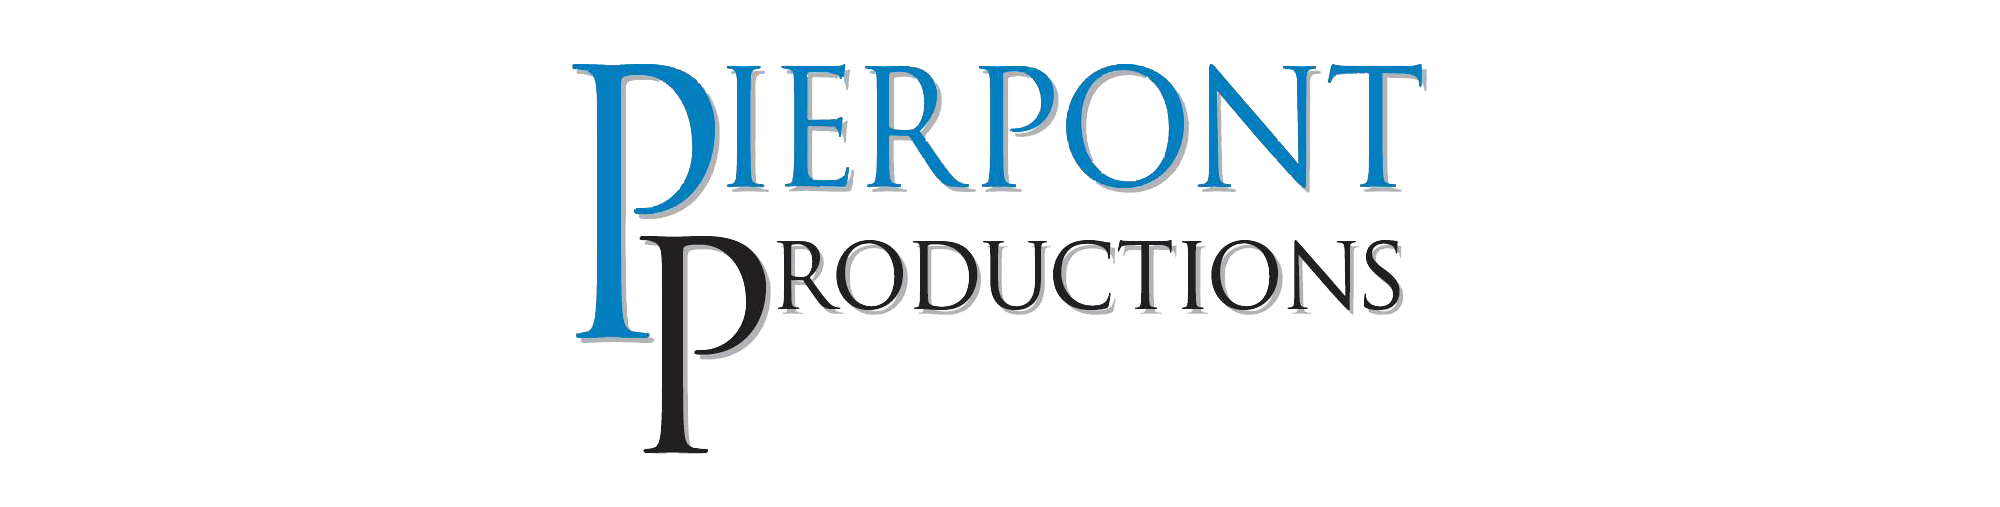 Pierpont Productions